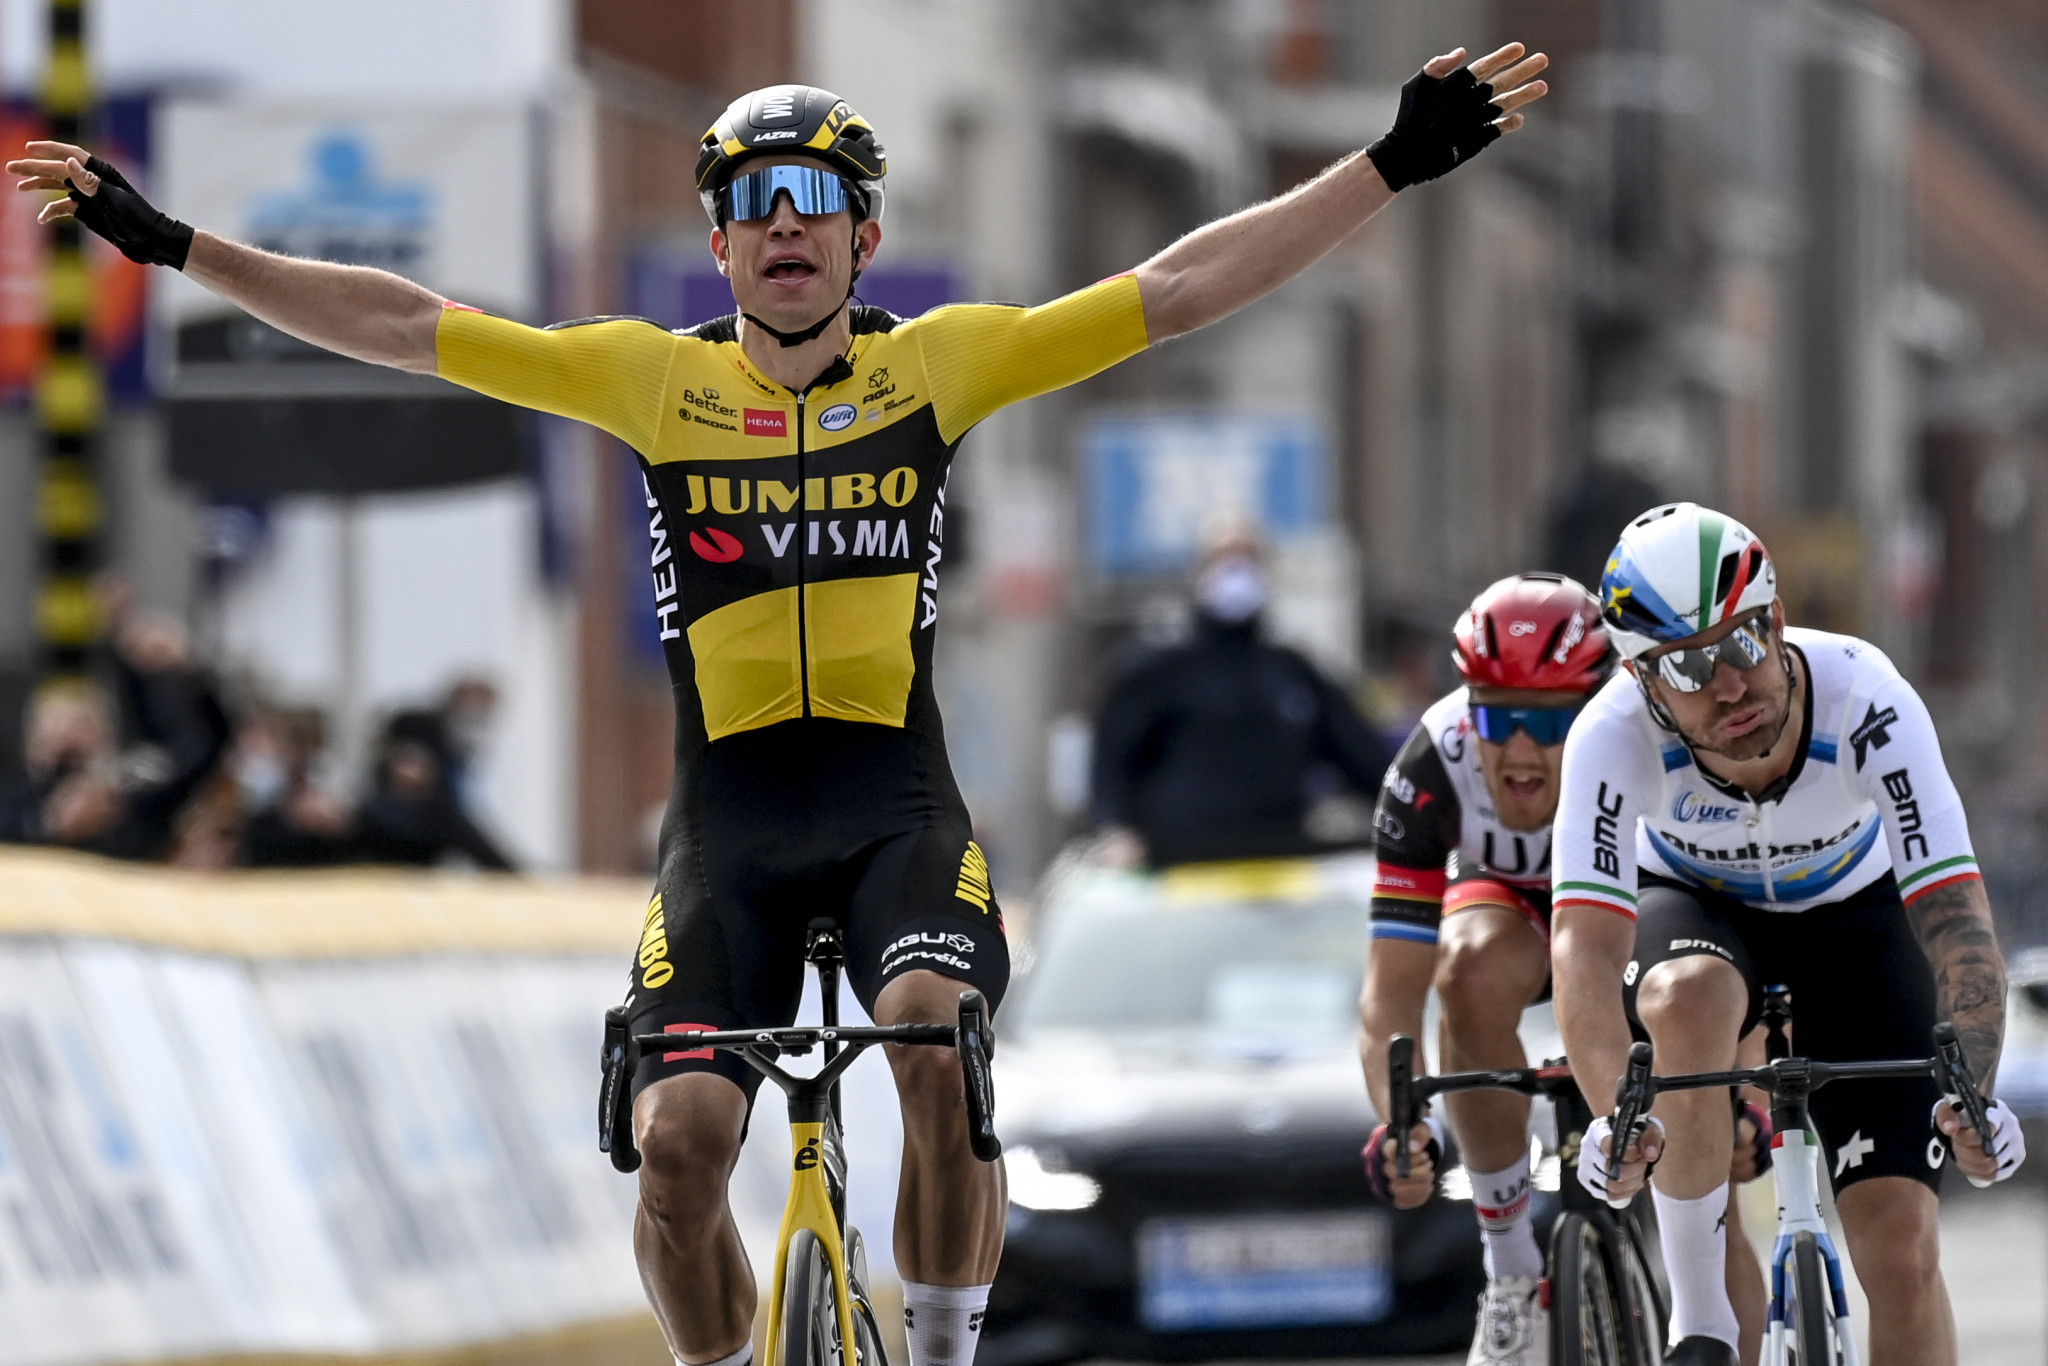 Van Aert wins Gent-Wevelgem as two teams pull out due to COVID-19 cases